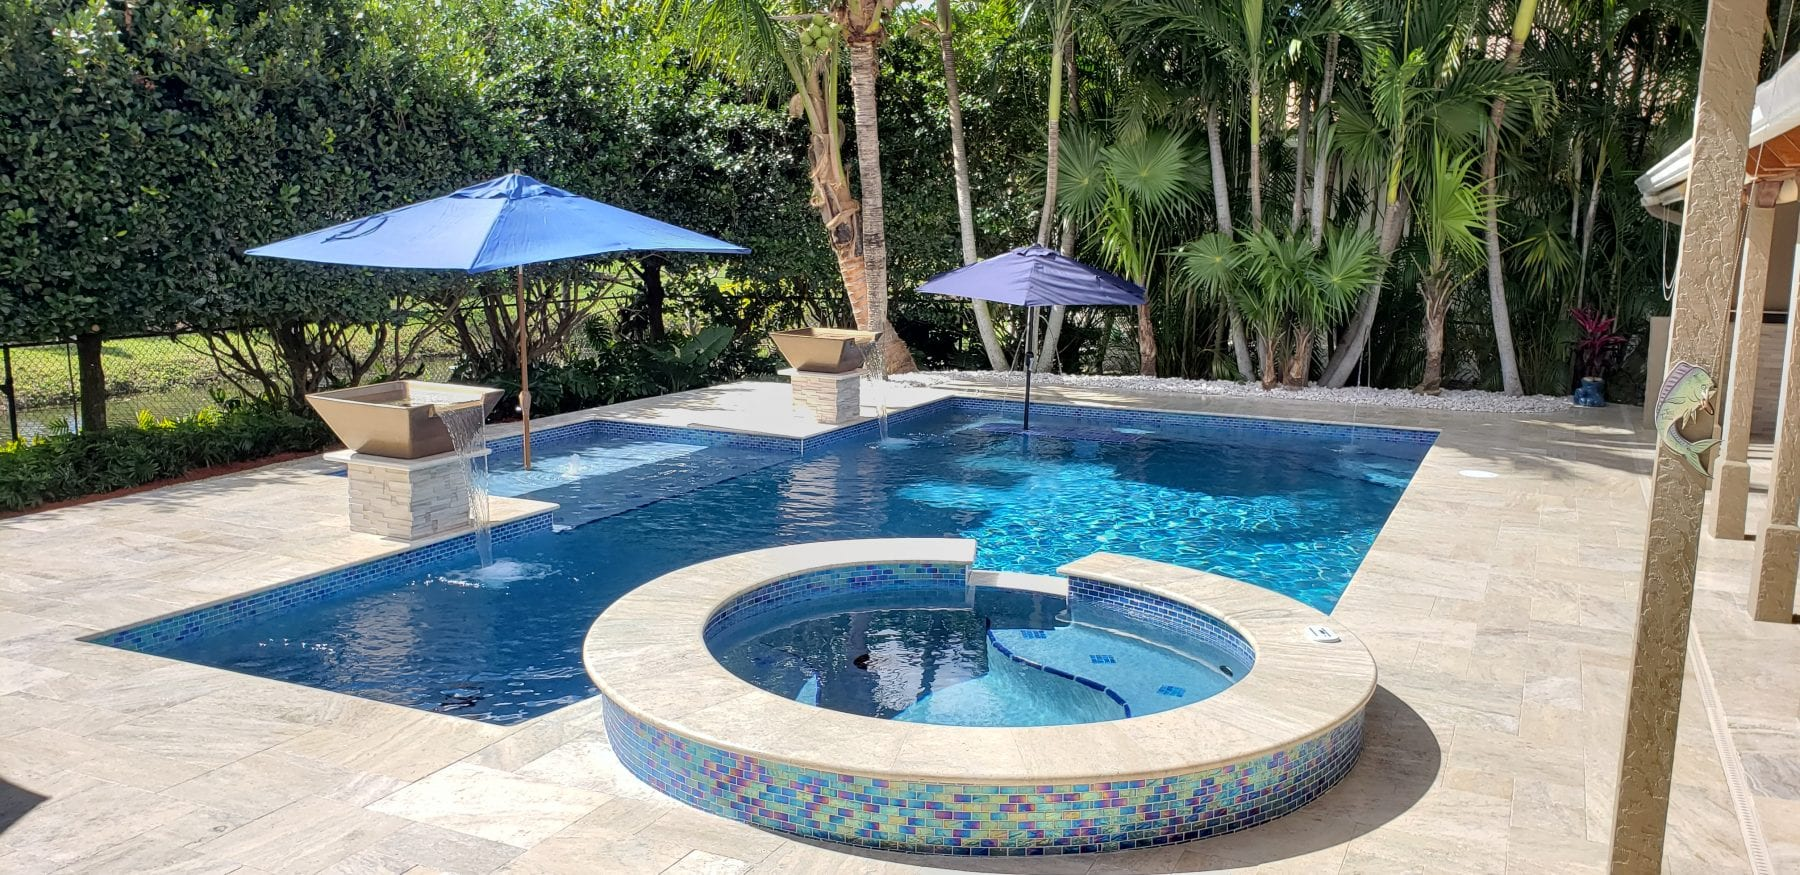 Cliff\'s Pools & Patios: Pool Remodeling, Patio & Driveway ...